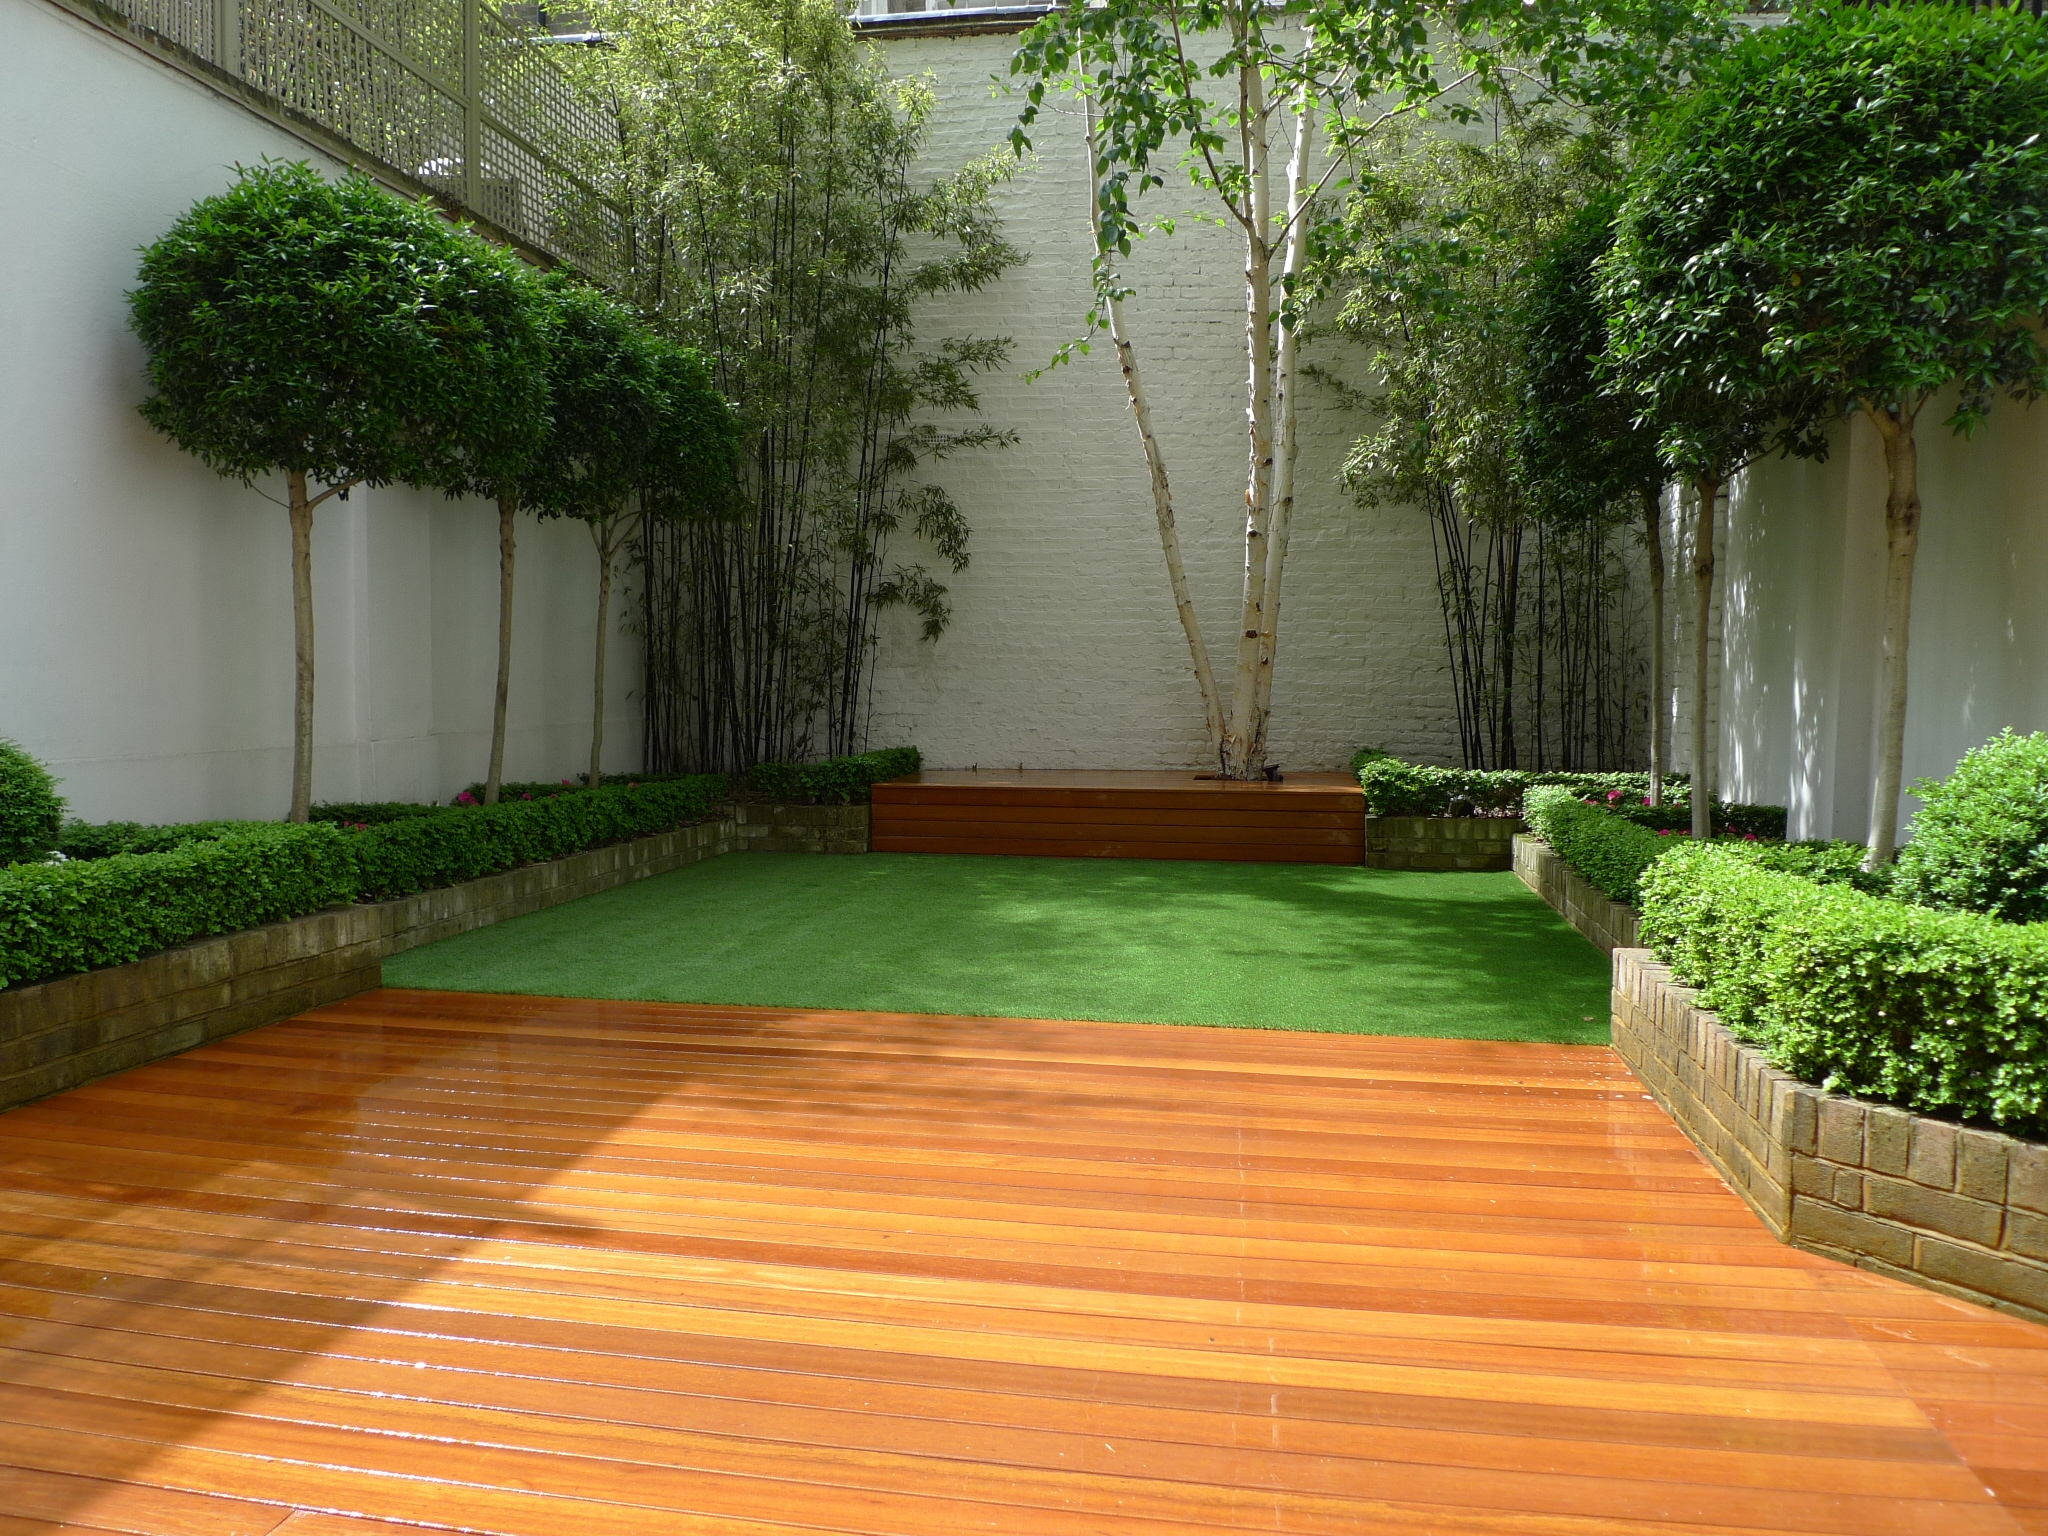 Chelsea garden design hardwood decking artificial grass for Landscape design london